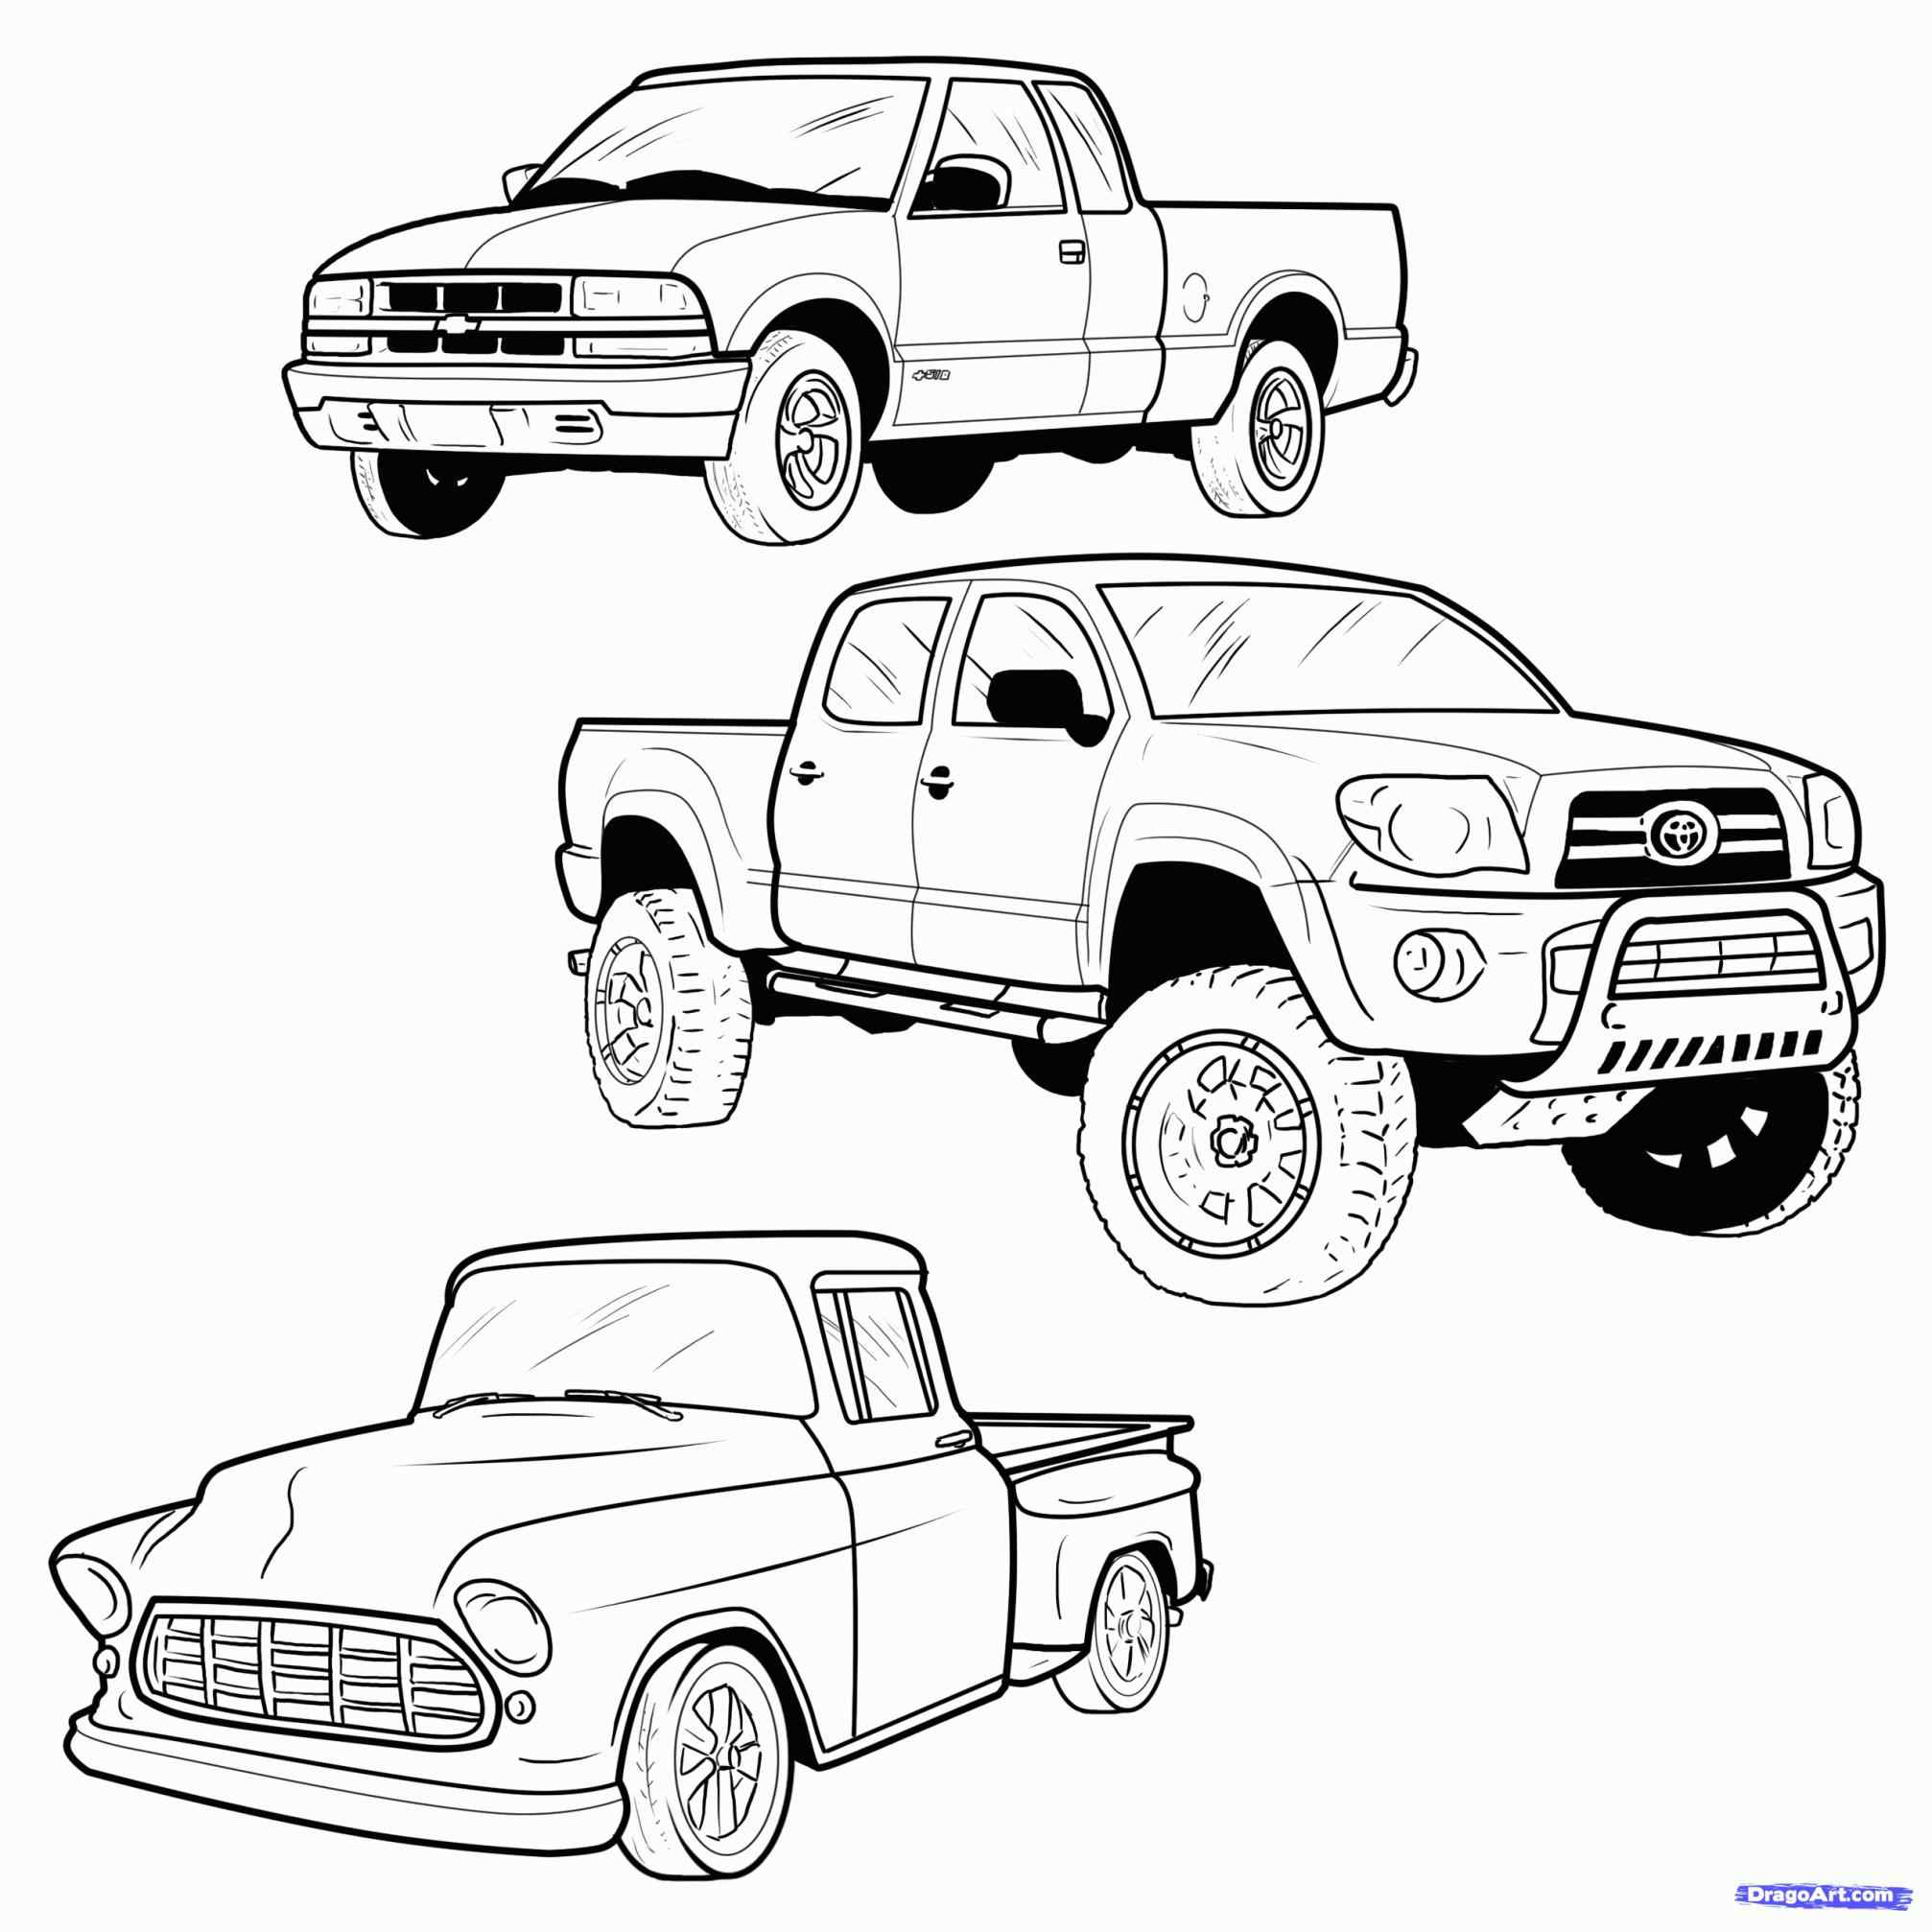 57 Chevy Drawing At Free For Personal Use 1957 4 Door Truck 2014x2014 Coloring Pages Online Printable